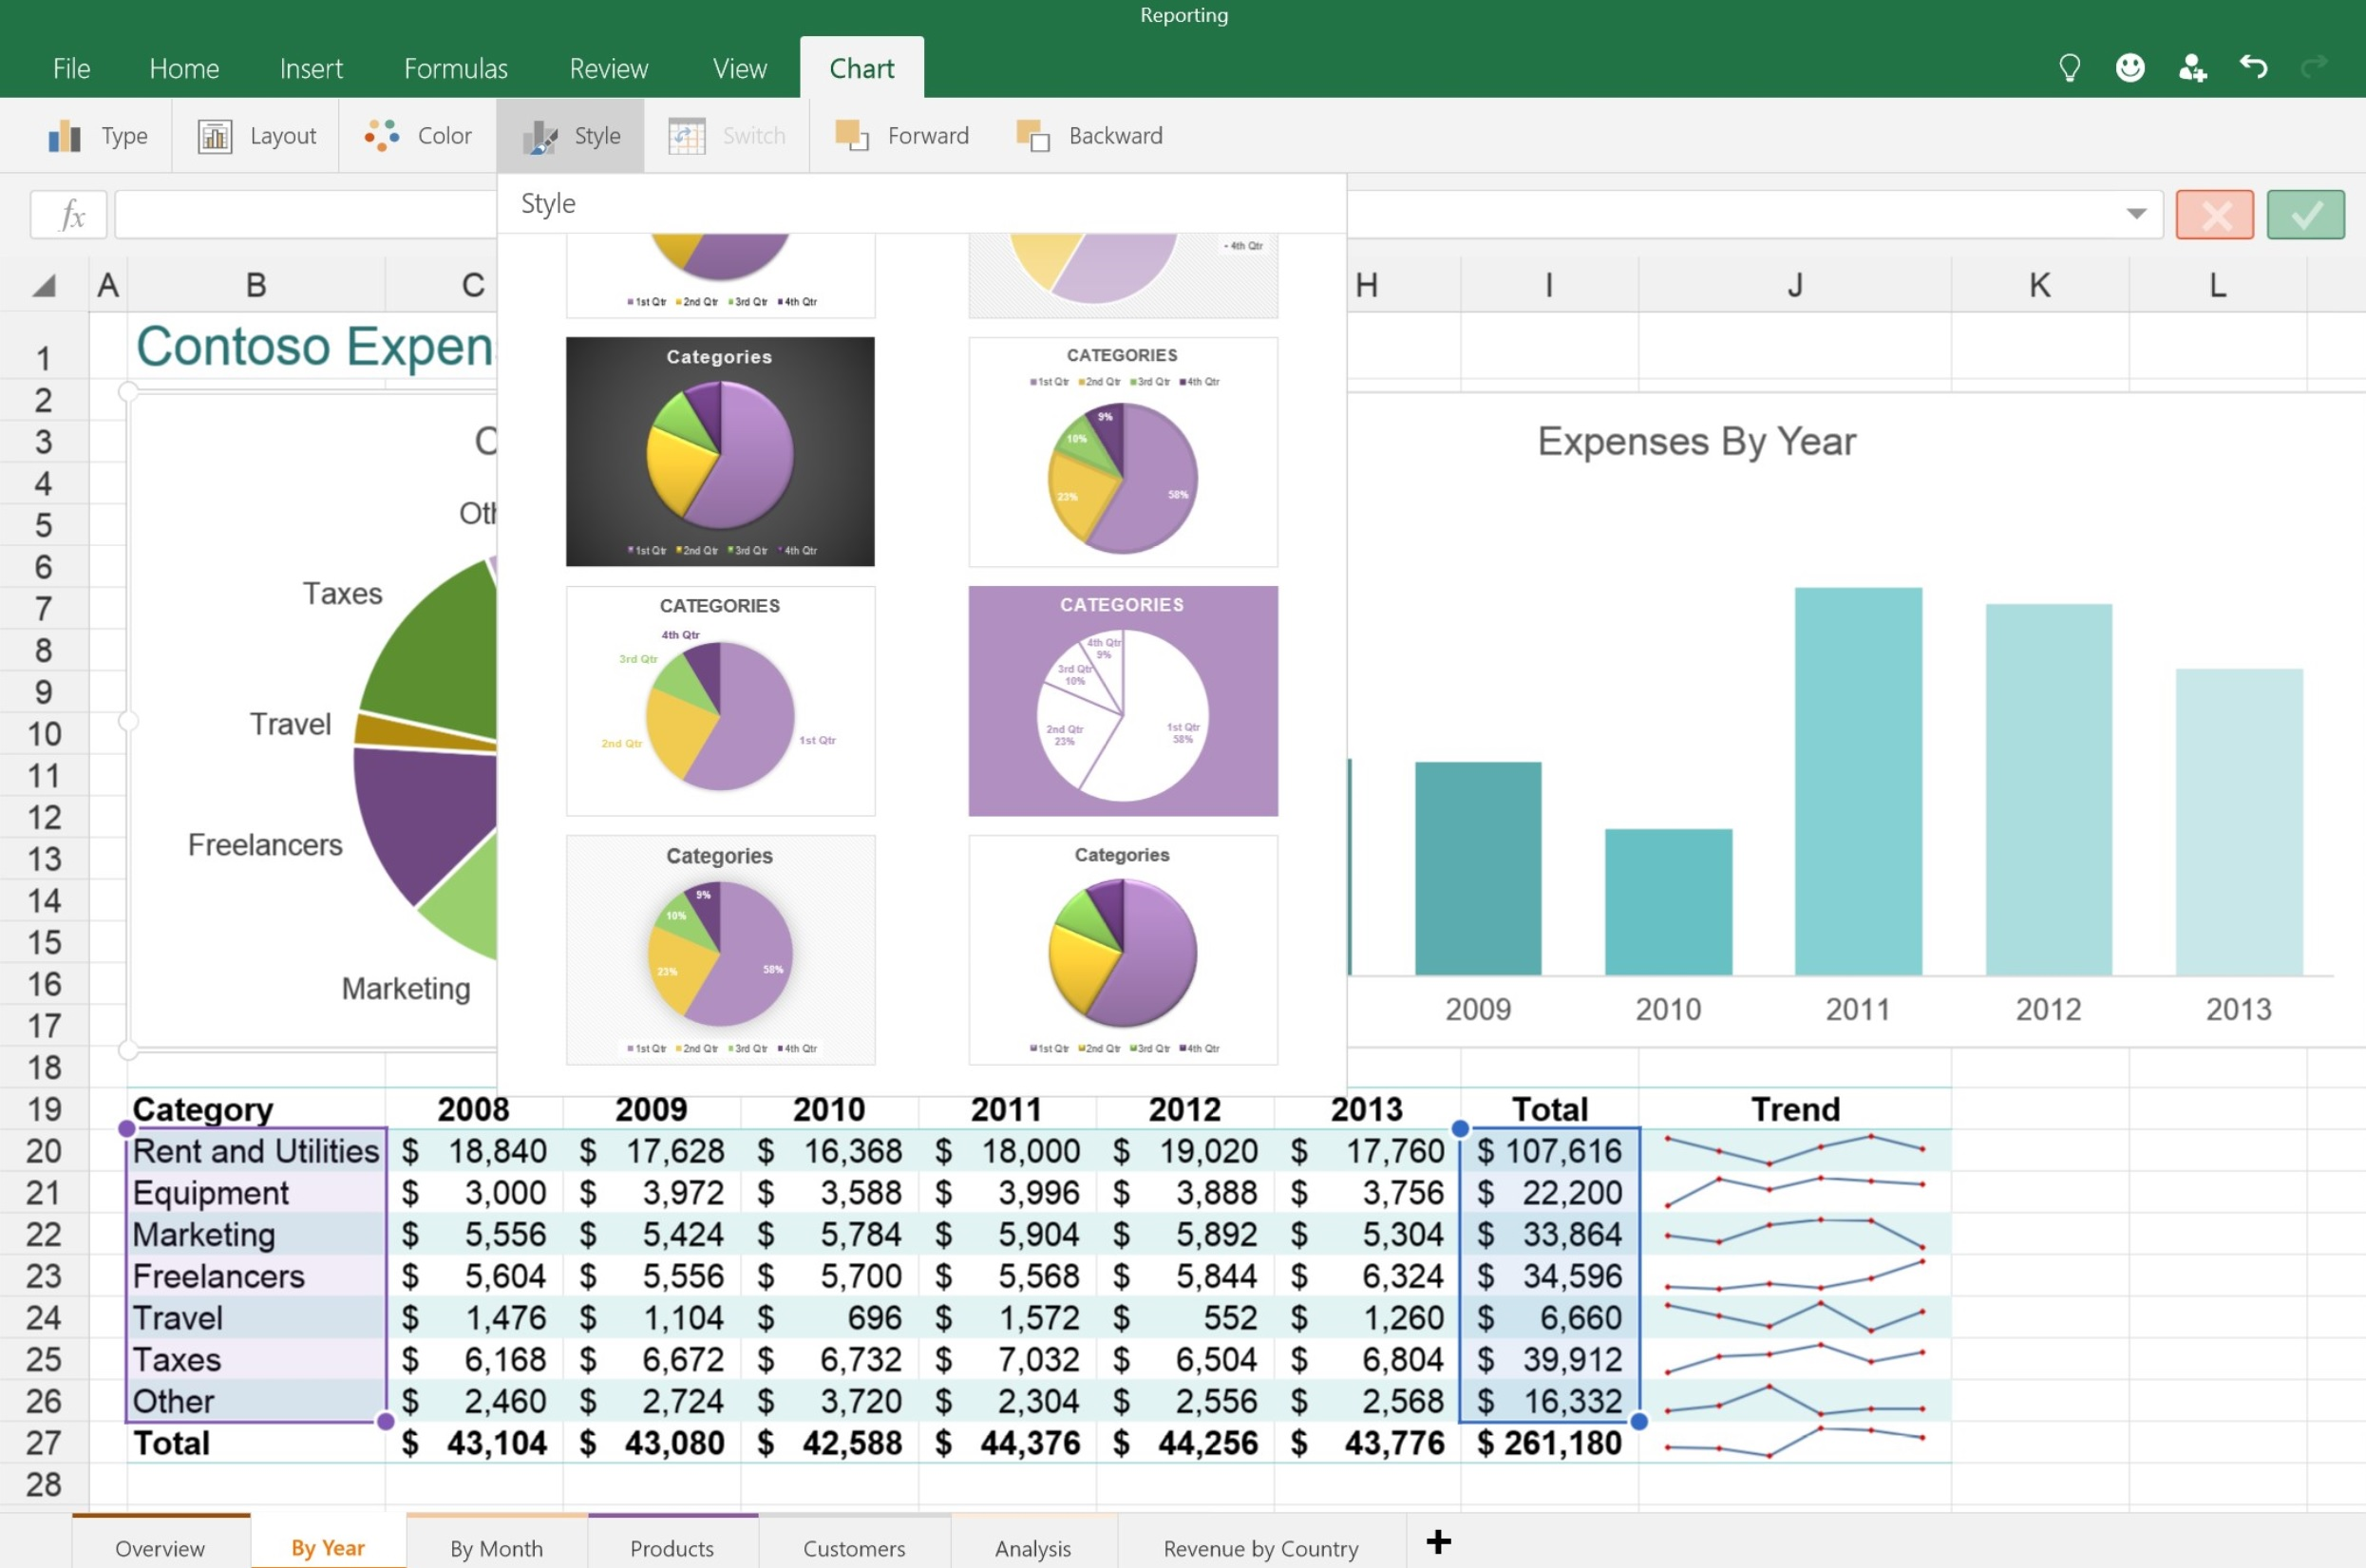 Features Available In The New Word, Excel And PowerPoint Apps For